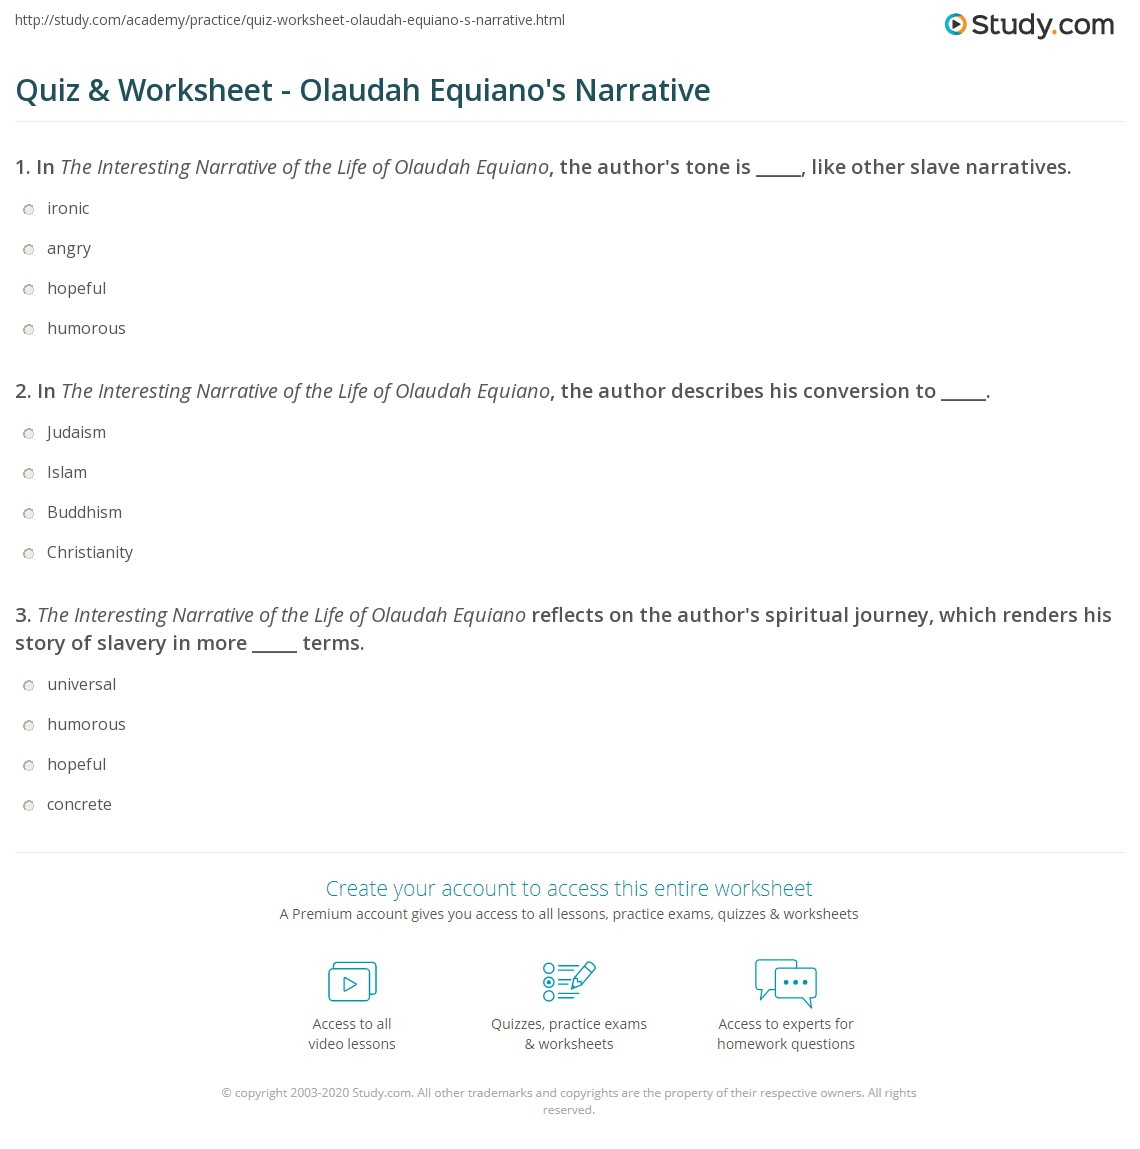 quiz worksheet olaudah equiano s narrative study com print the interesting narrative of the life of olaudah equiano analysis worksheet